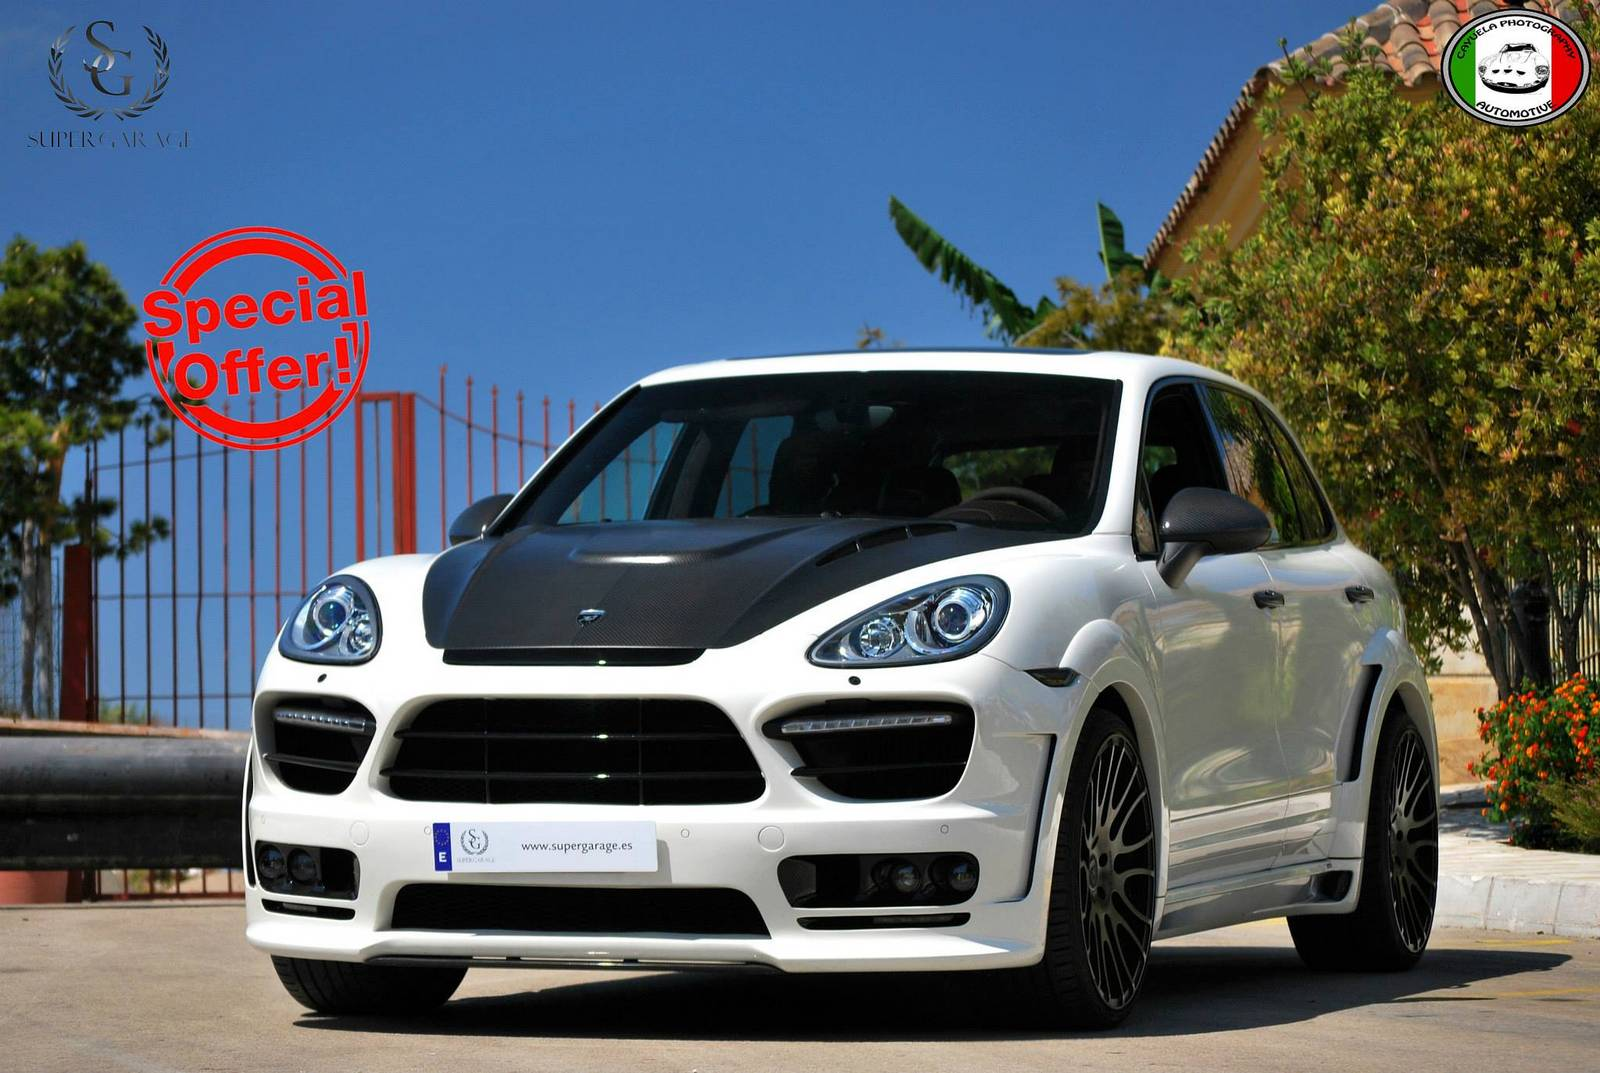 for sale porsche cayenne hamann guardian evo diesel at 175 000 euros gtspirit. Black Bedroom Furniture Sets. Home Design Ideas